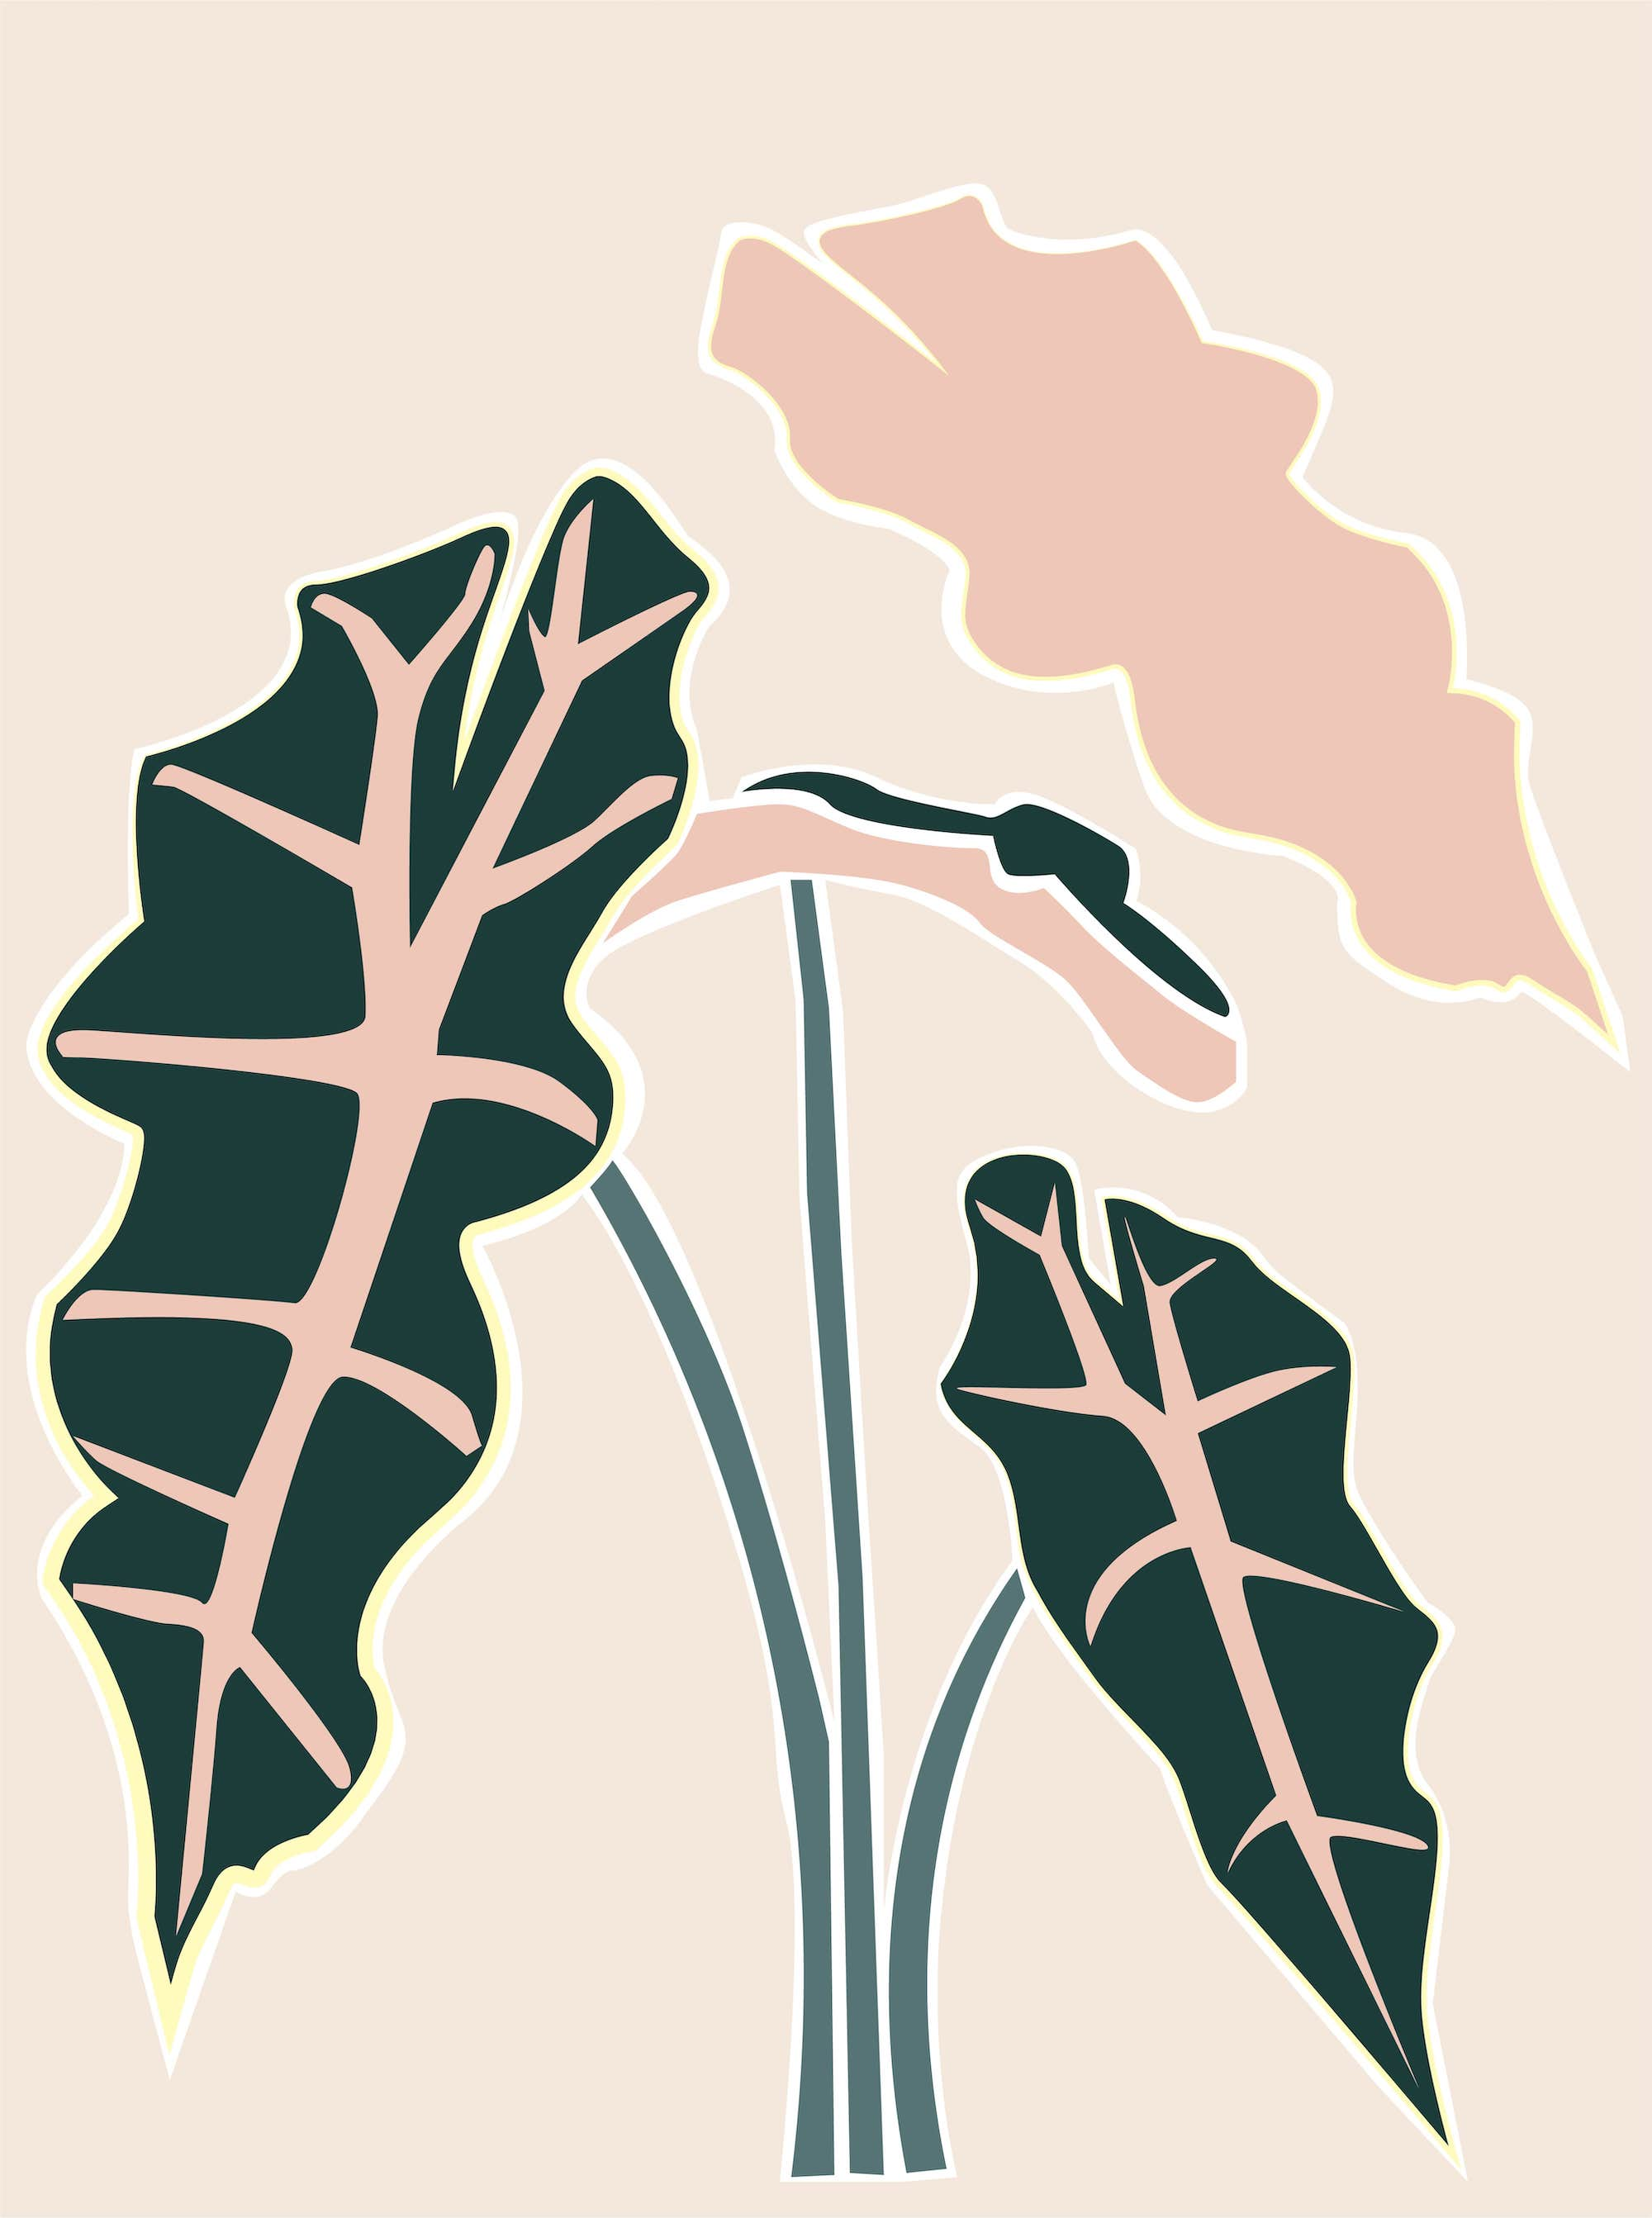 Plant care tips by Leaf Envy Alocasia Polly, watering, humidity, fertiliser requirements